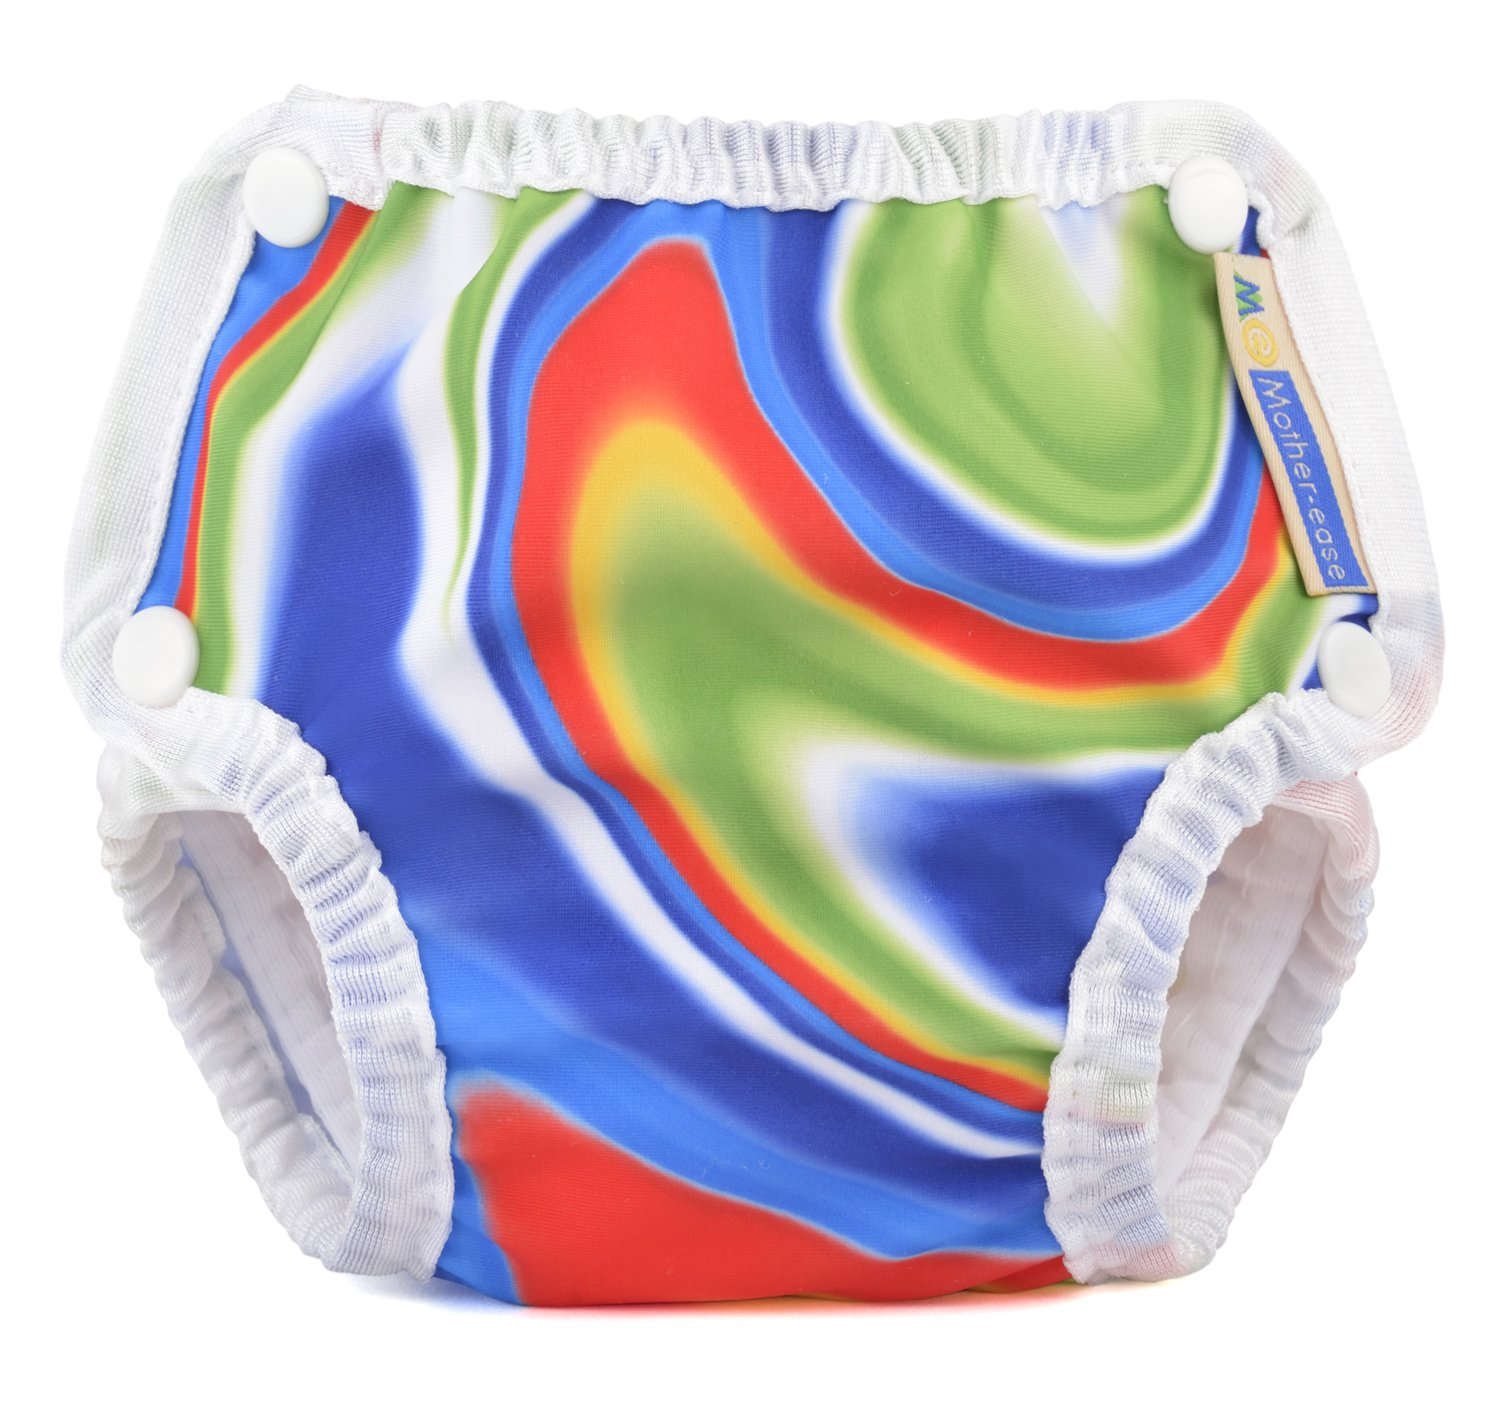 Splash Daisies 27-33 lbs Large Mother-Ease Swim Diaper